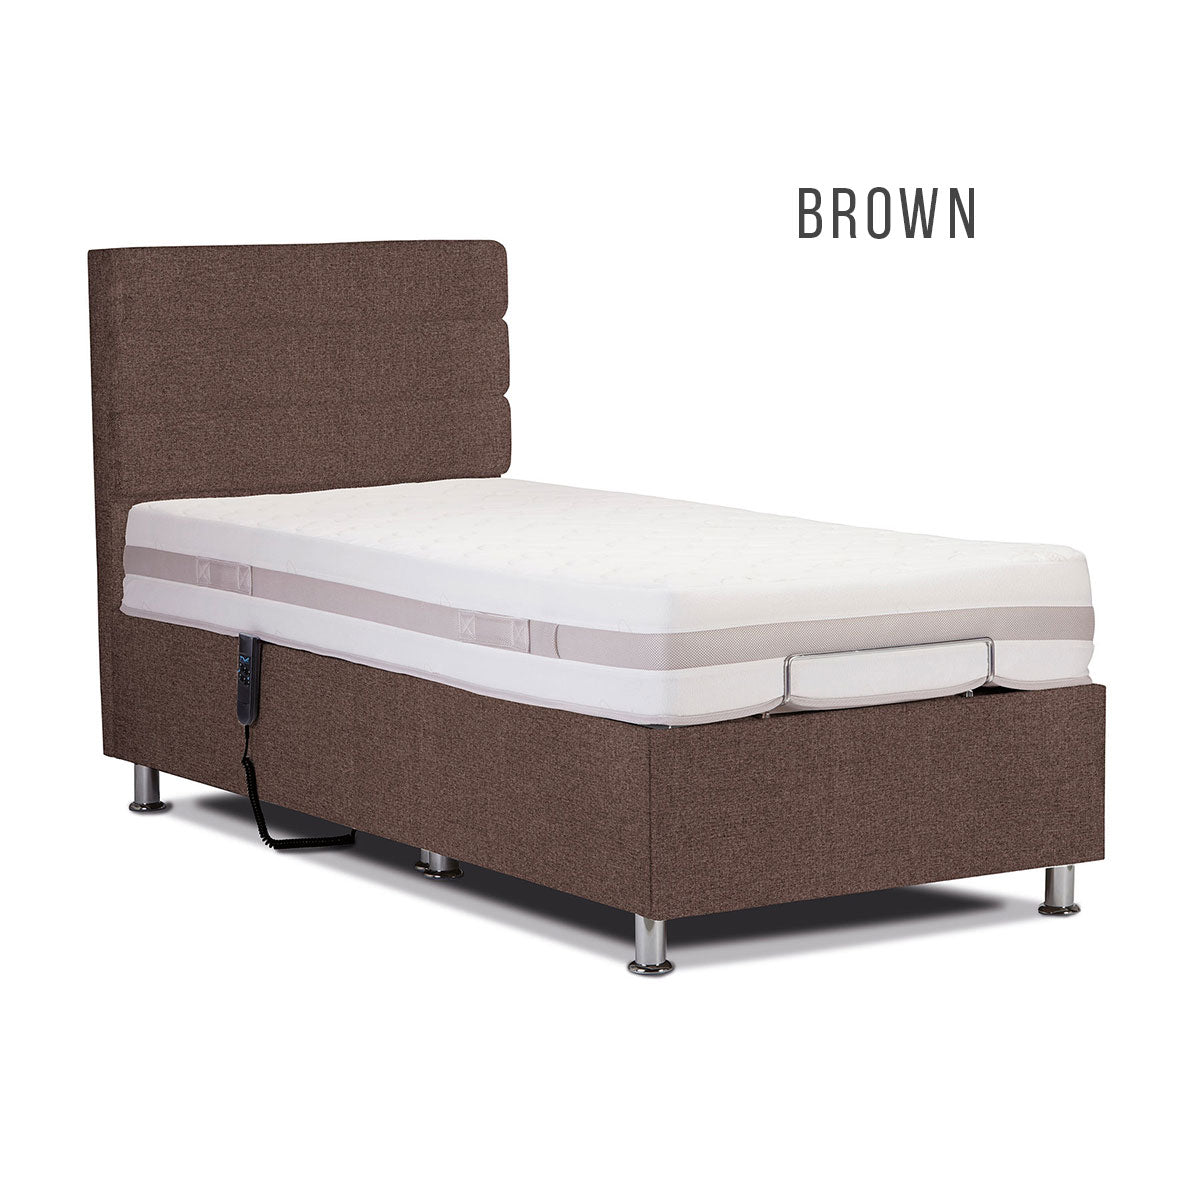 "Sherborne 2'6"" Hampton Head and Foot Adjustable Bed"